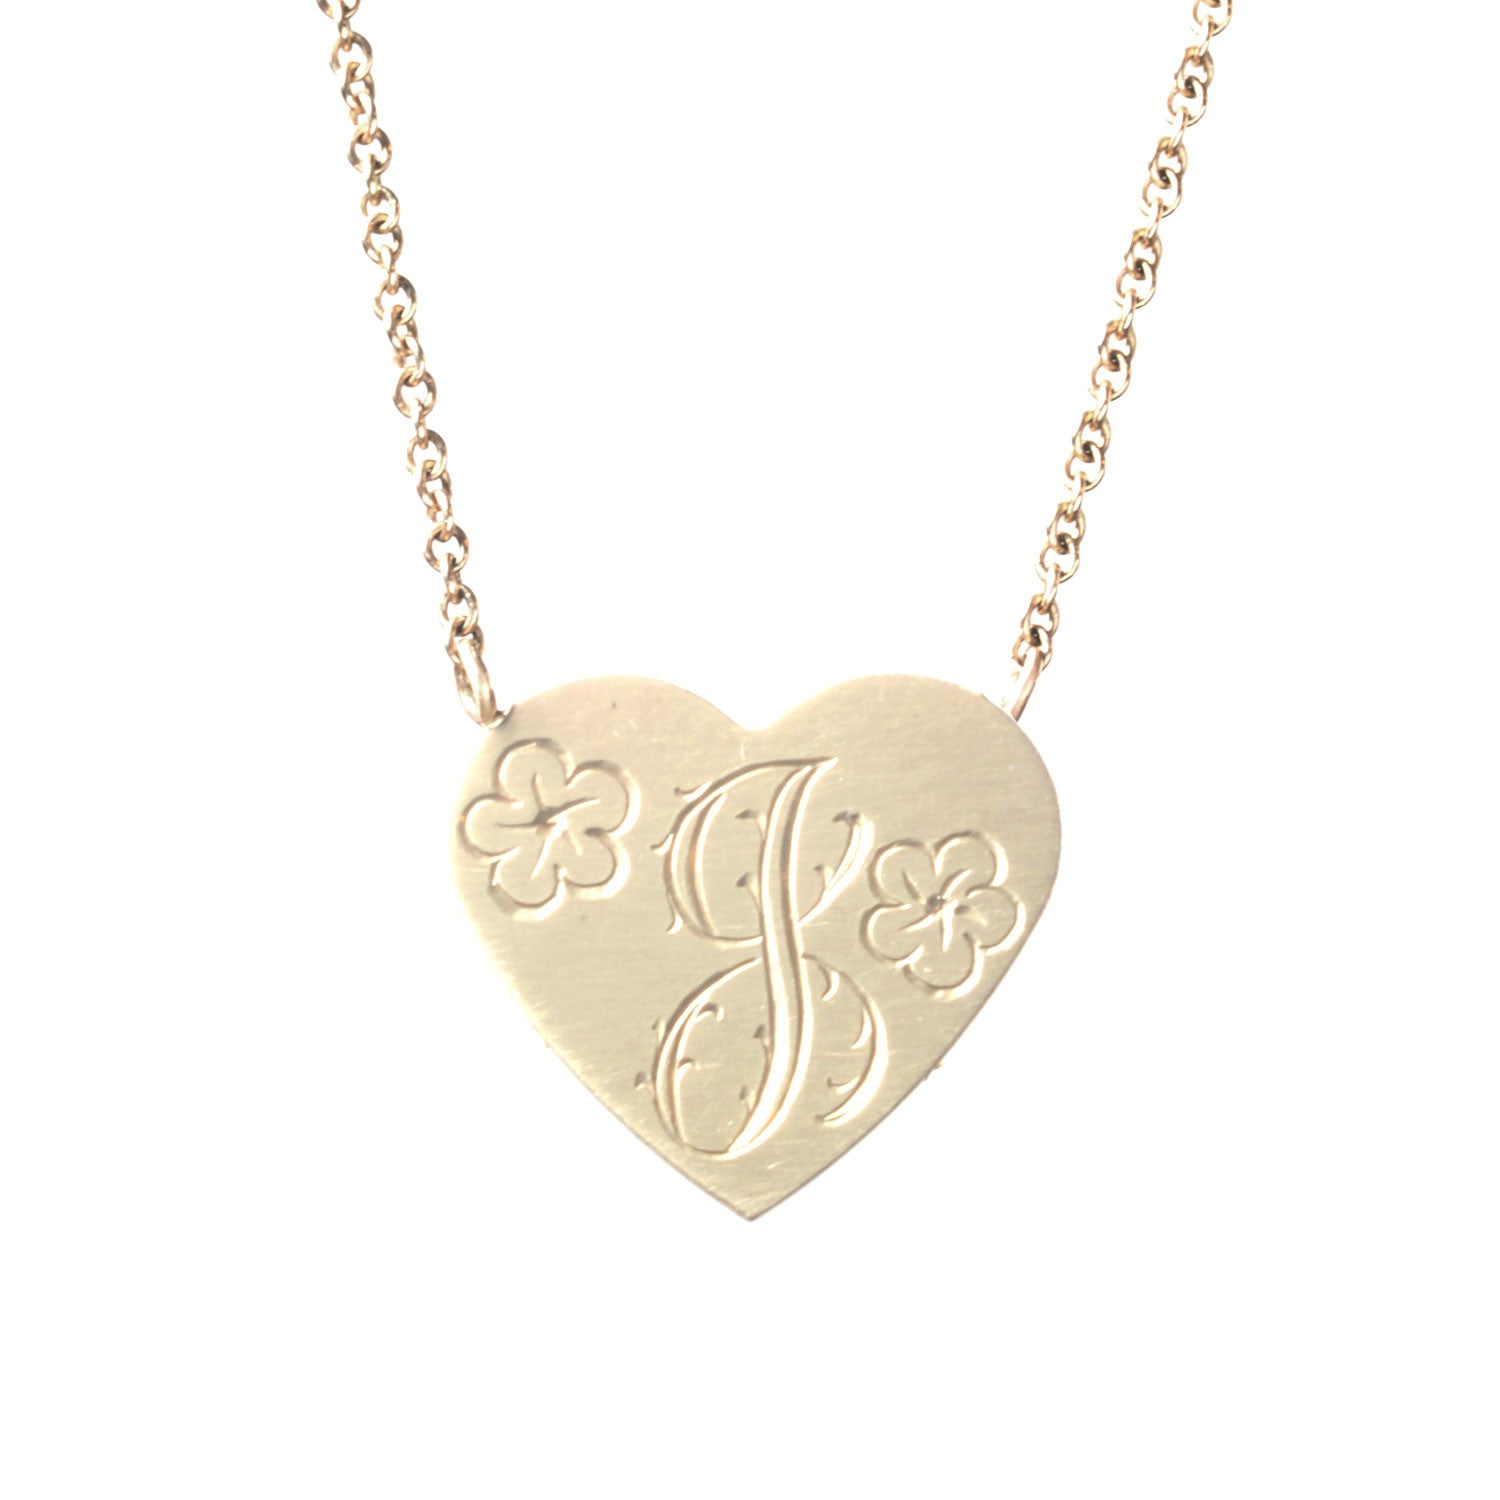 miru product image jewellery a heart maison jewelry products necklace